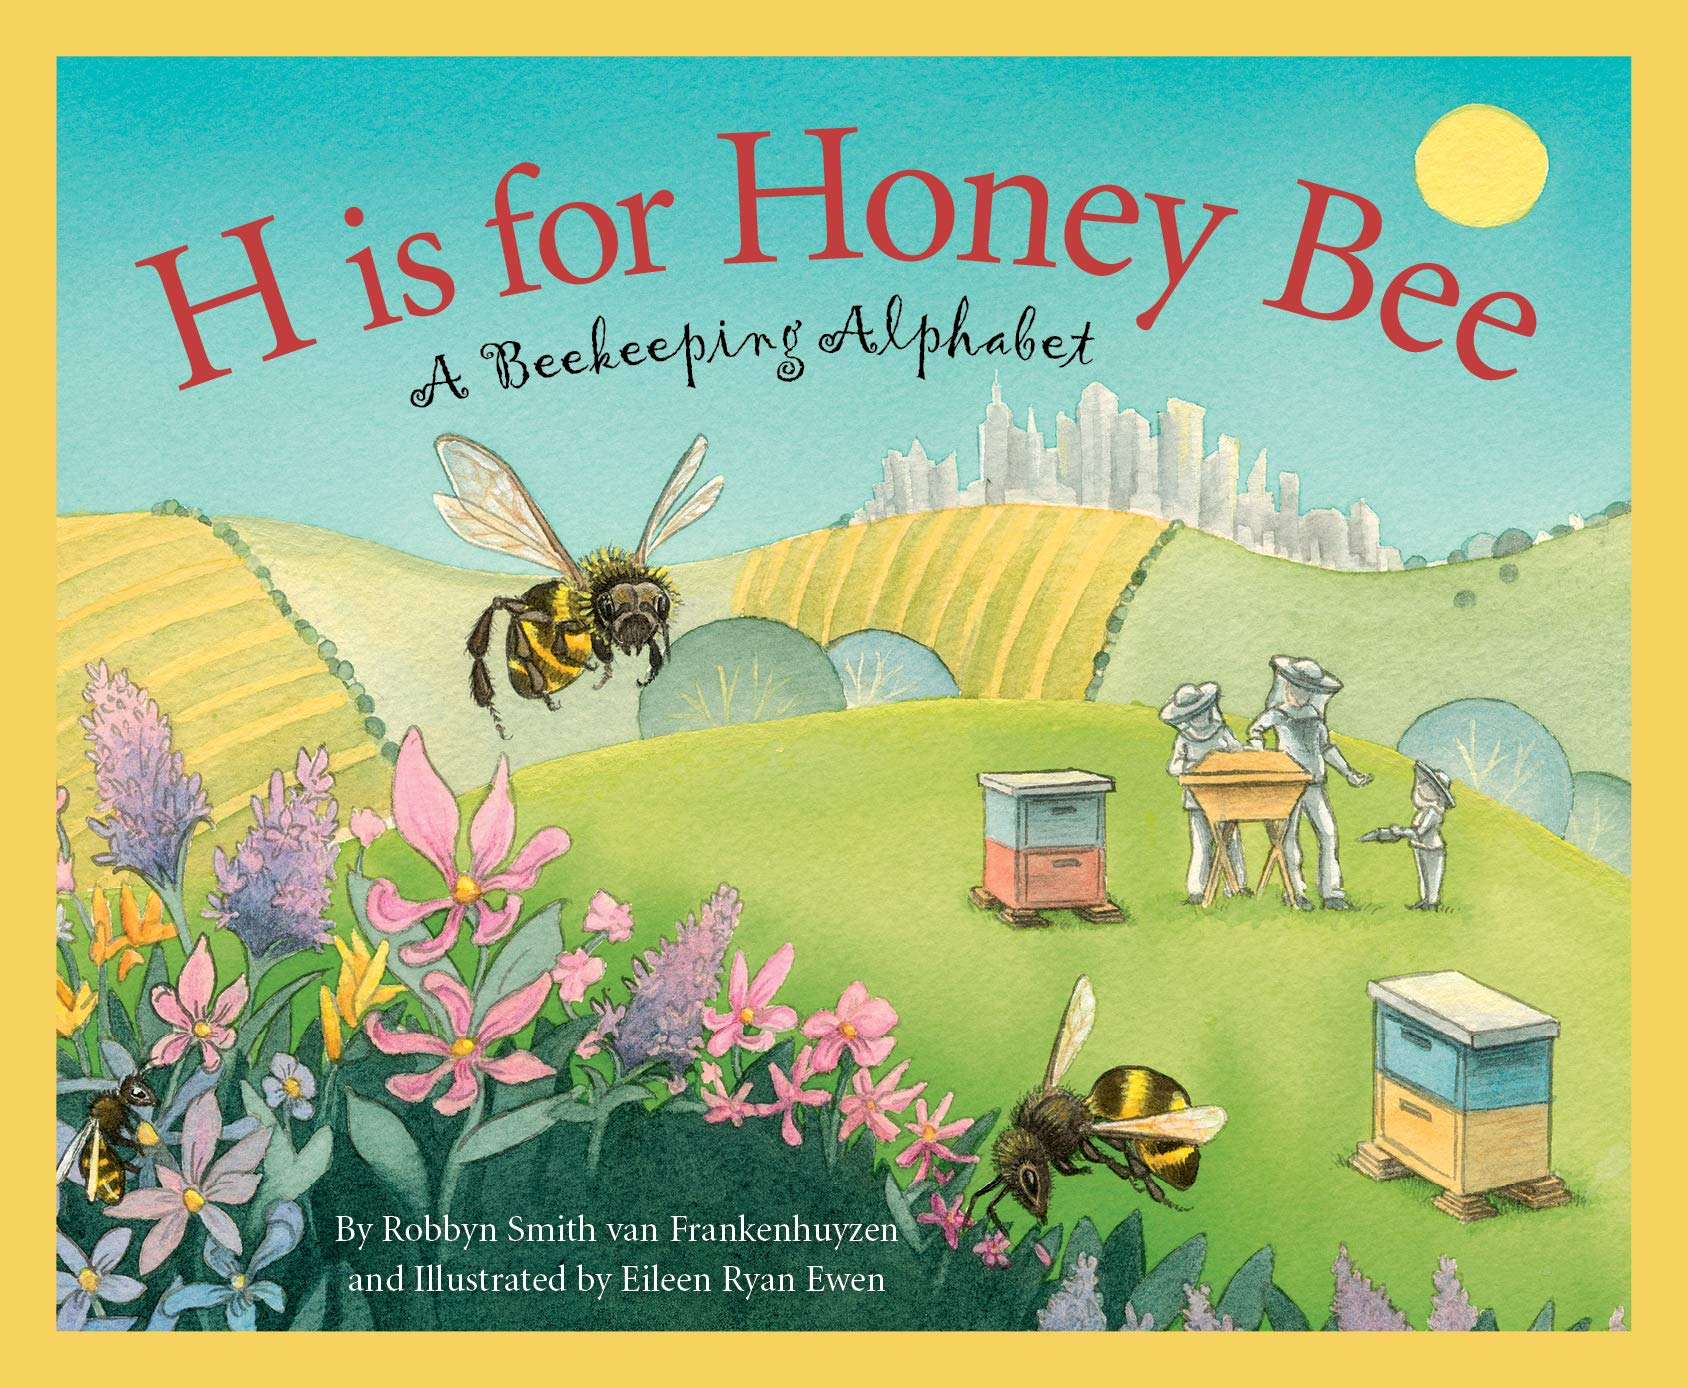 H is for Honey Bee: A Beekeeping Alphabet